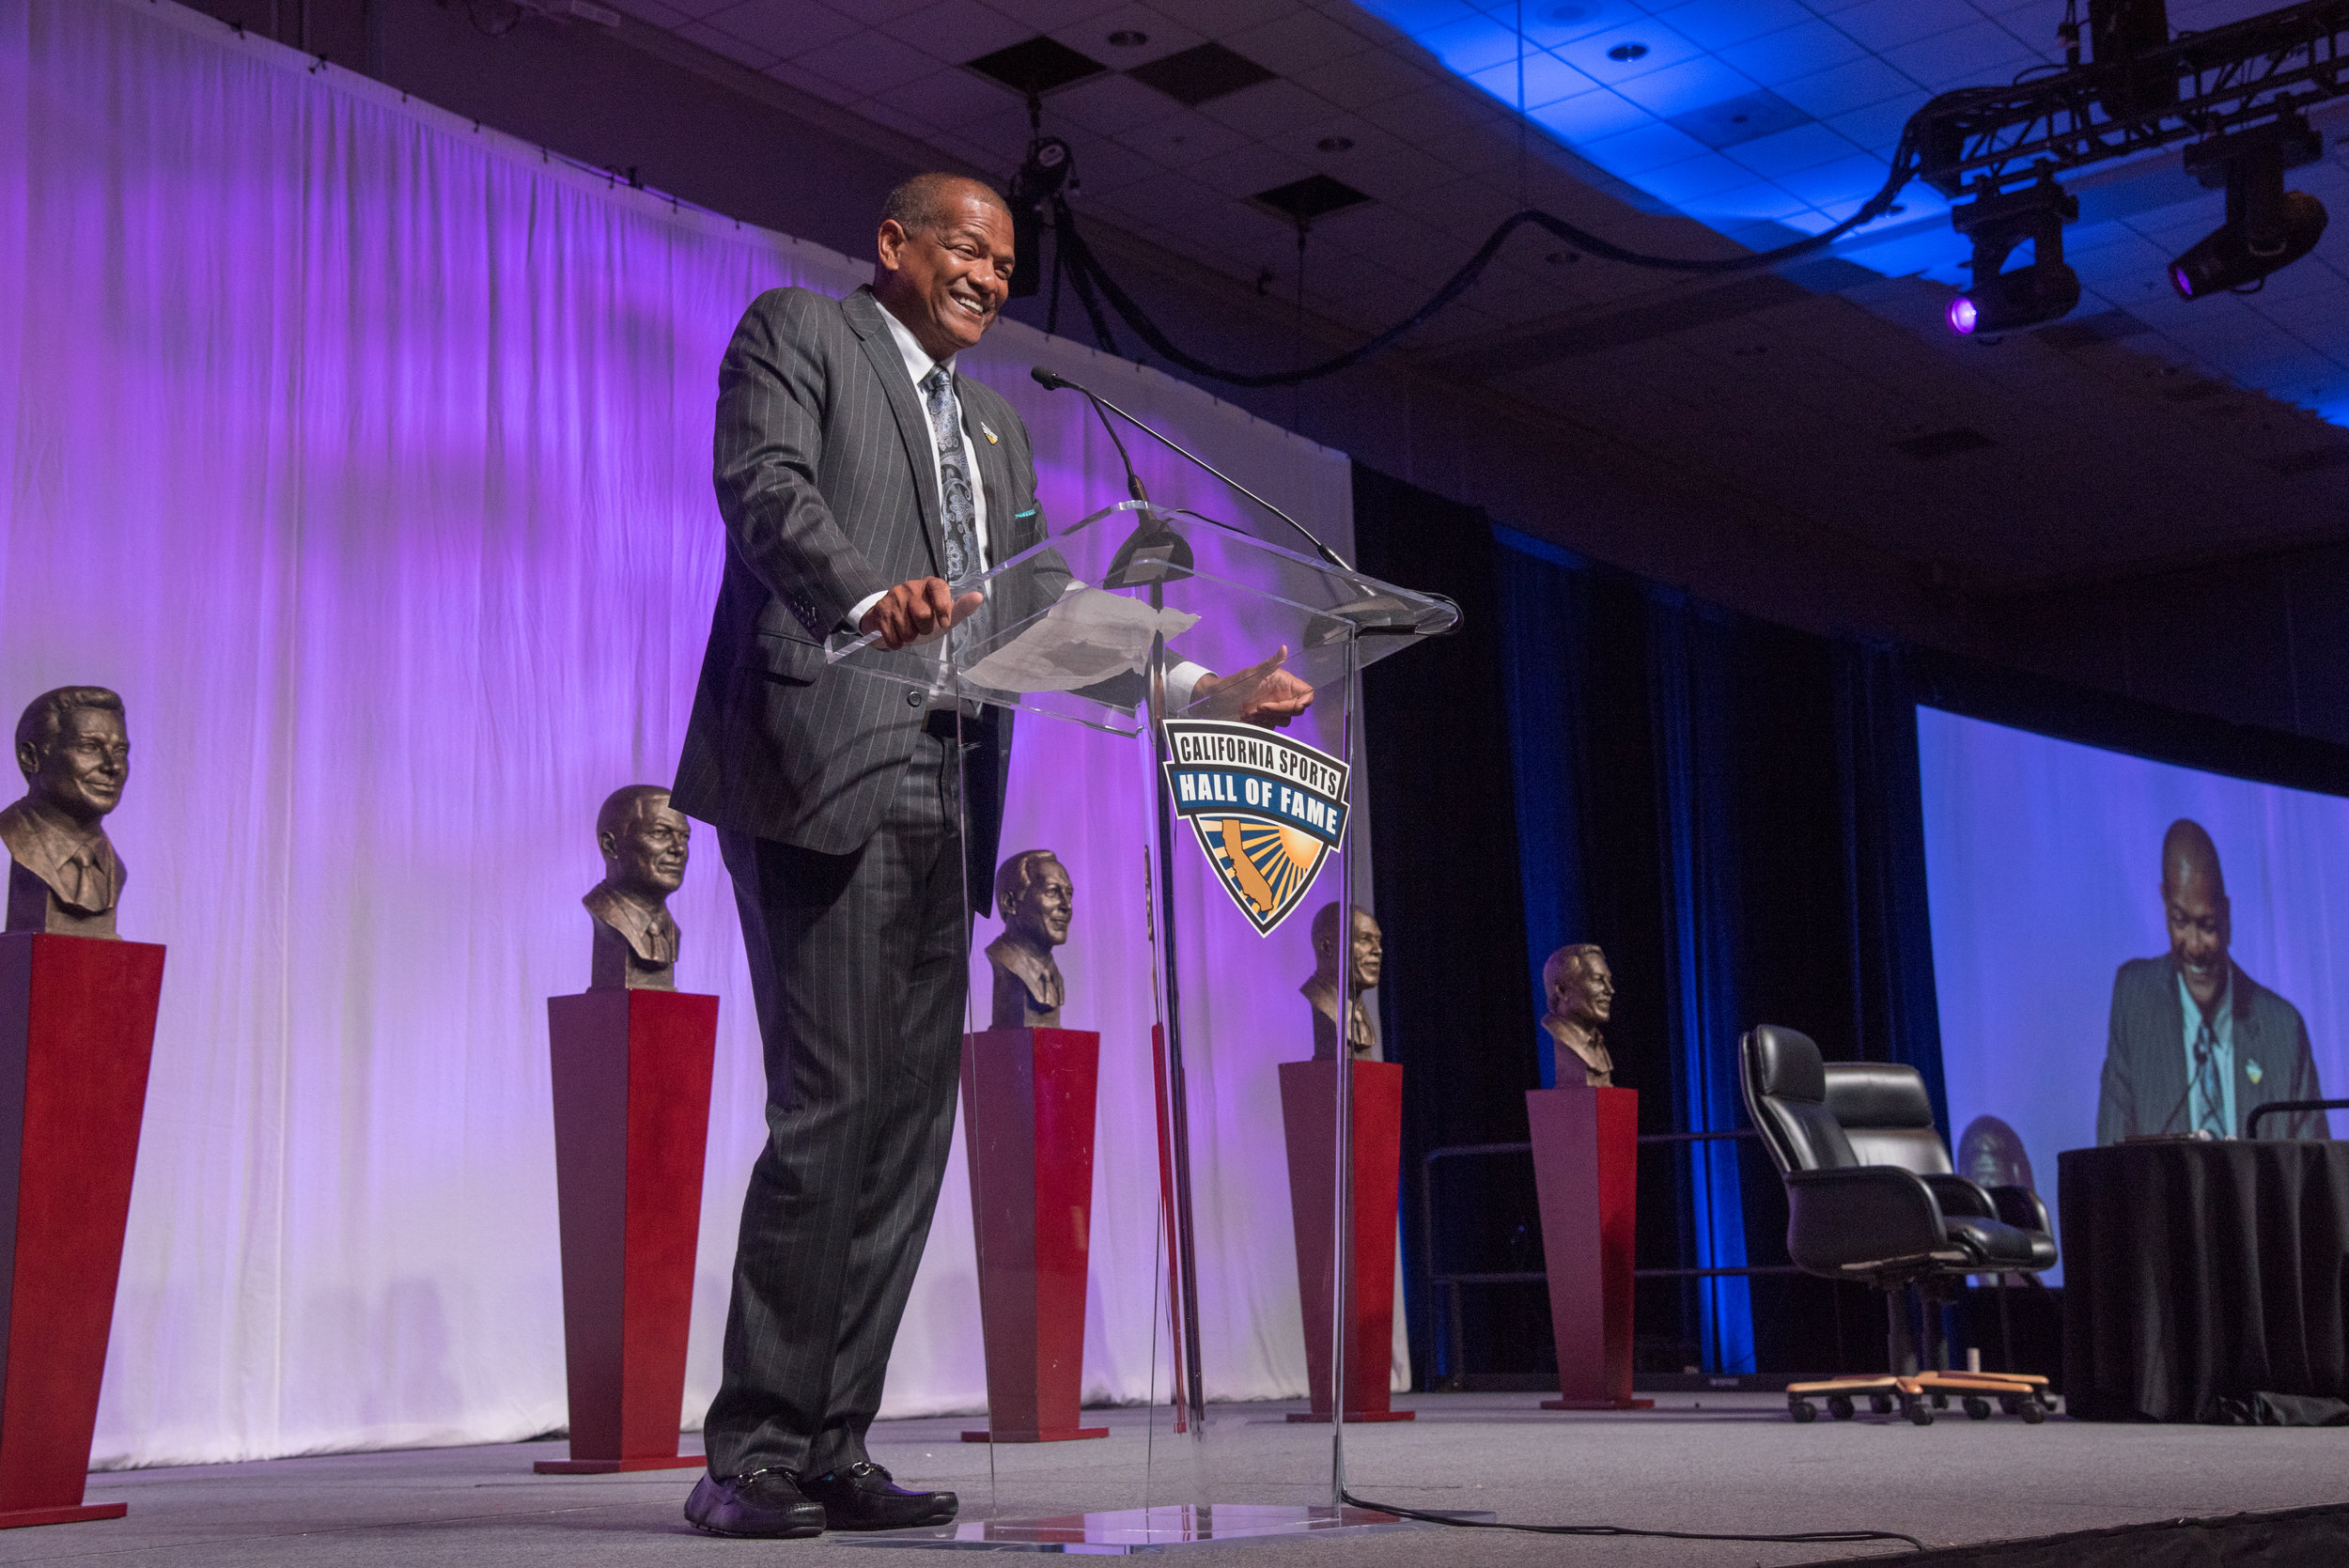 On Sunday, June 23, 2019, Marques was inducted into the 2019 California Sports Hall of Fame alongside Barry Bonds, Jerry Bus, Jim Gray and Todd Christensen.  Link to photo gallery